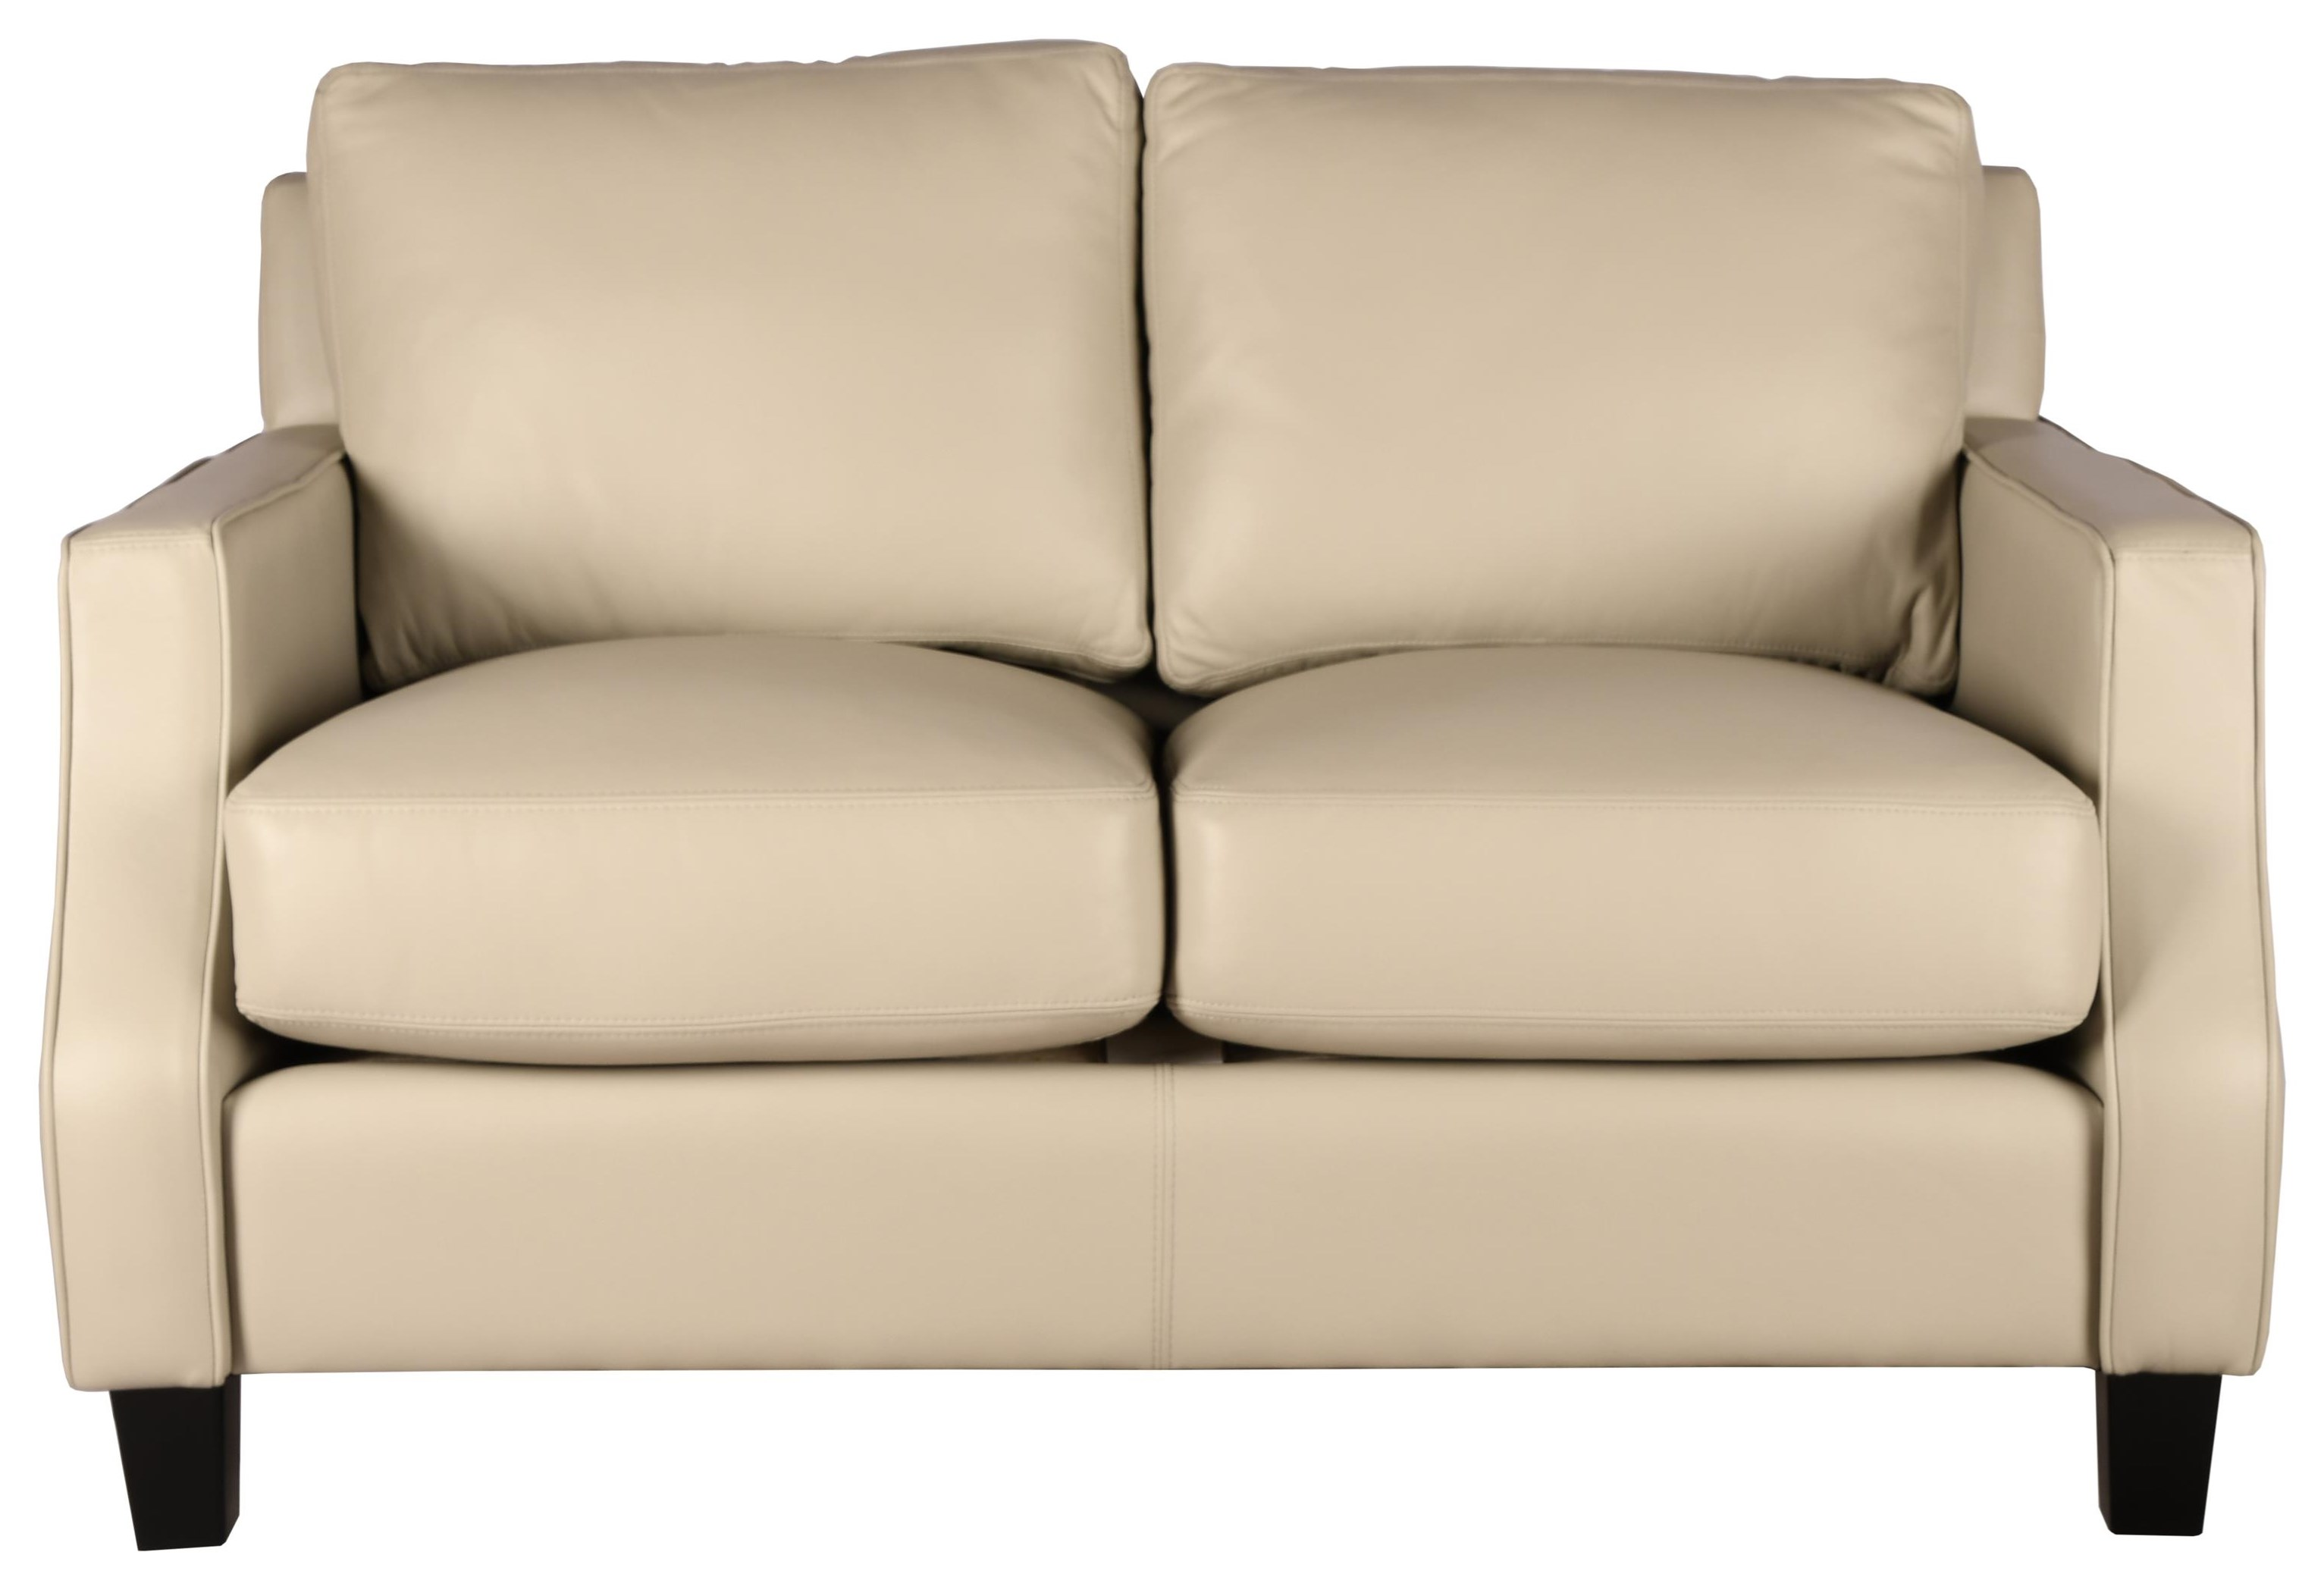 Divani Leather Loveseat by Castleridge Leather at Bennett's Furniture and Mattresses